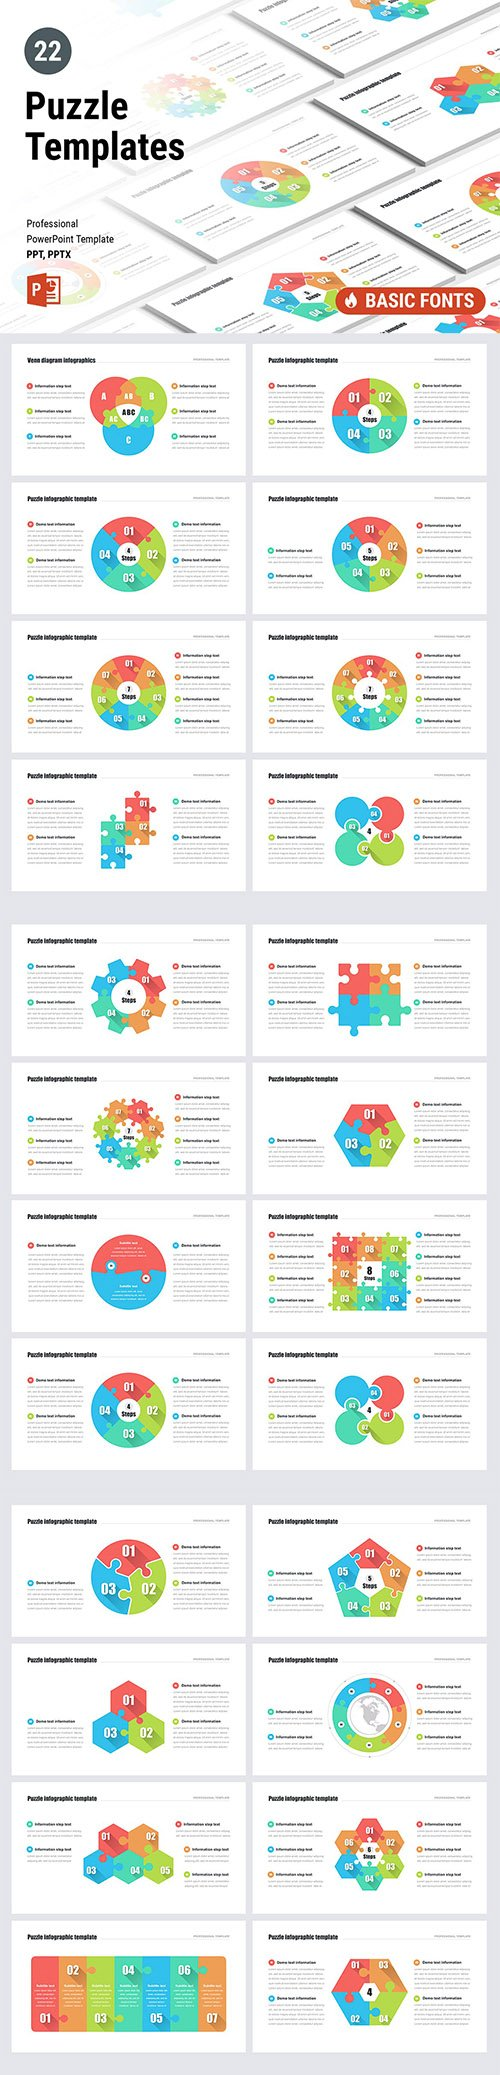 Puzzle Templates for Powerpoint Keynote and Google Slides Templates